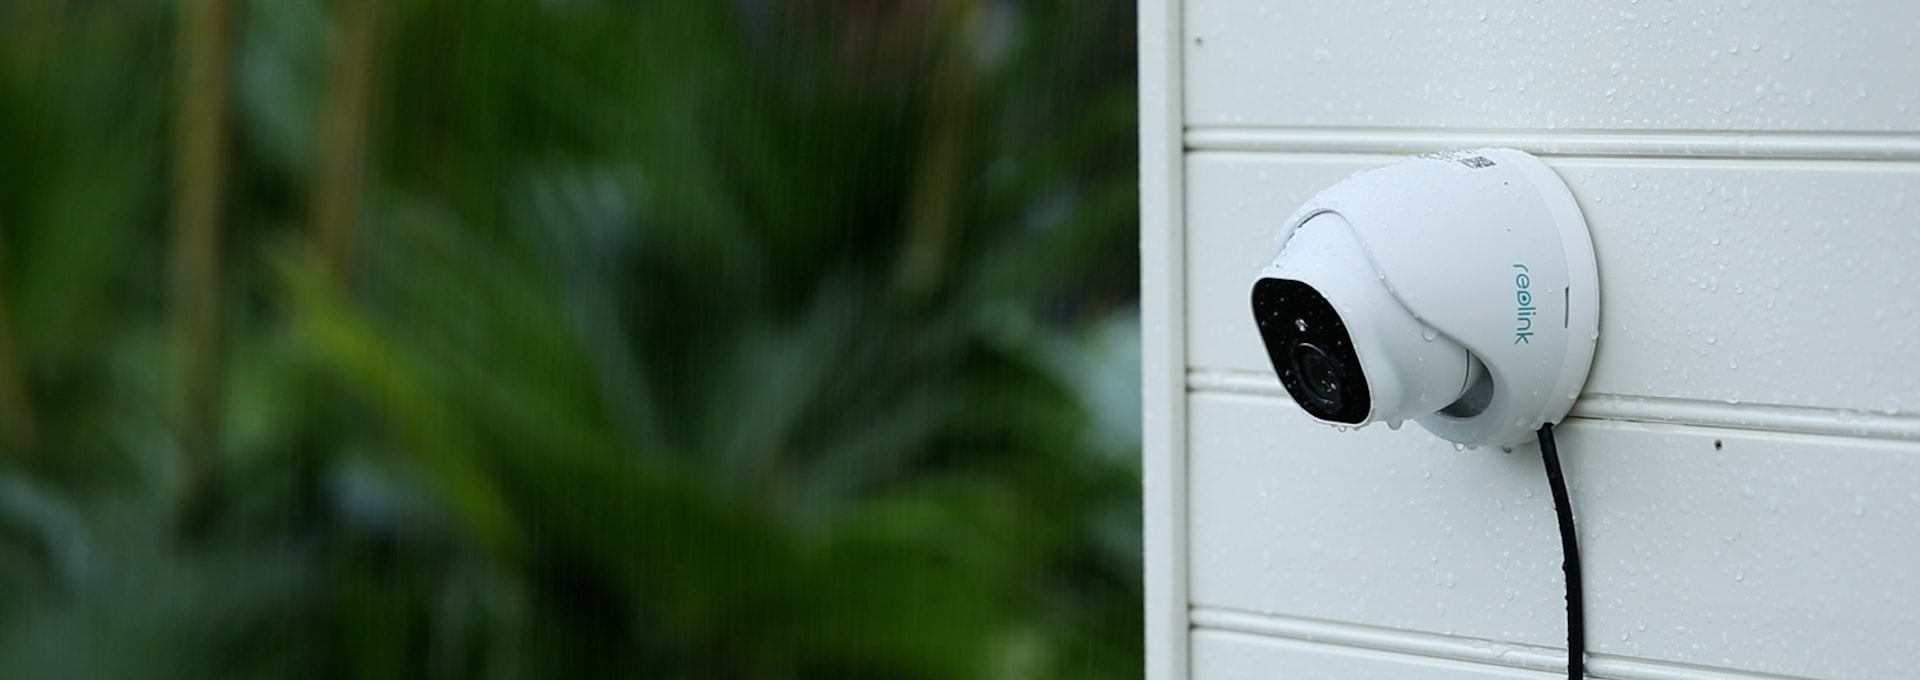 IP66 Weatherproof RLK8-800D4 4K Security Camera System